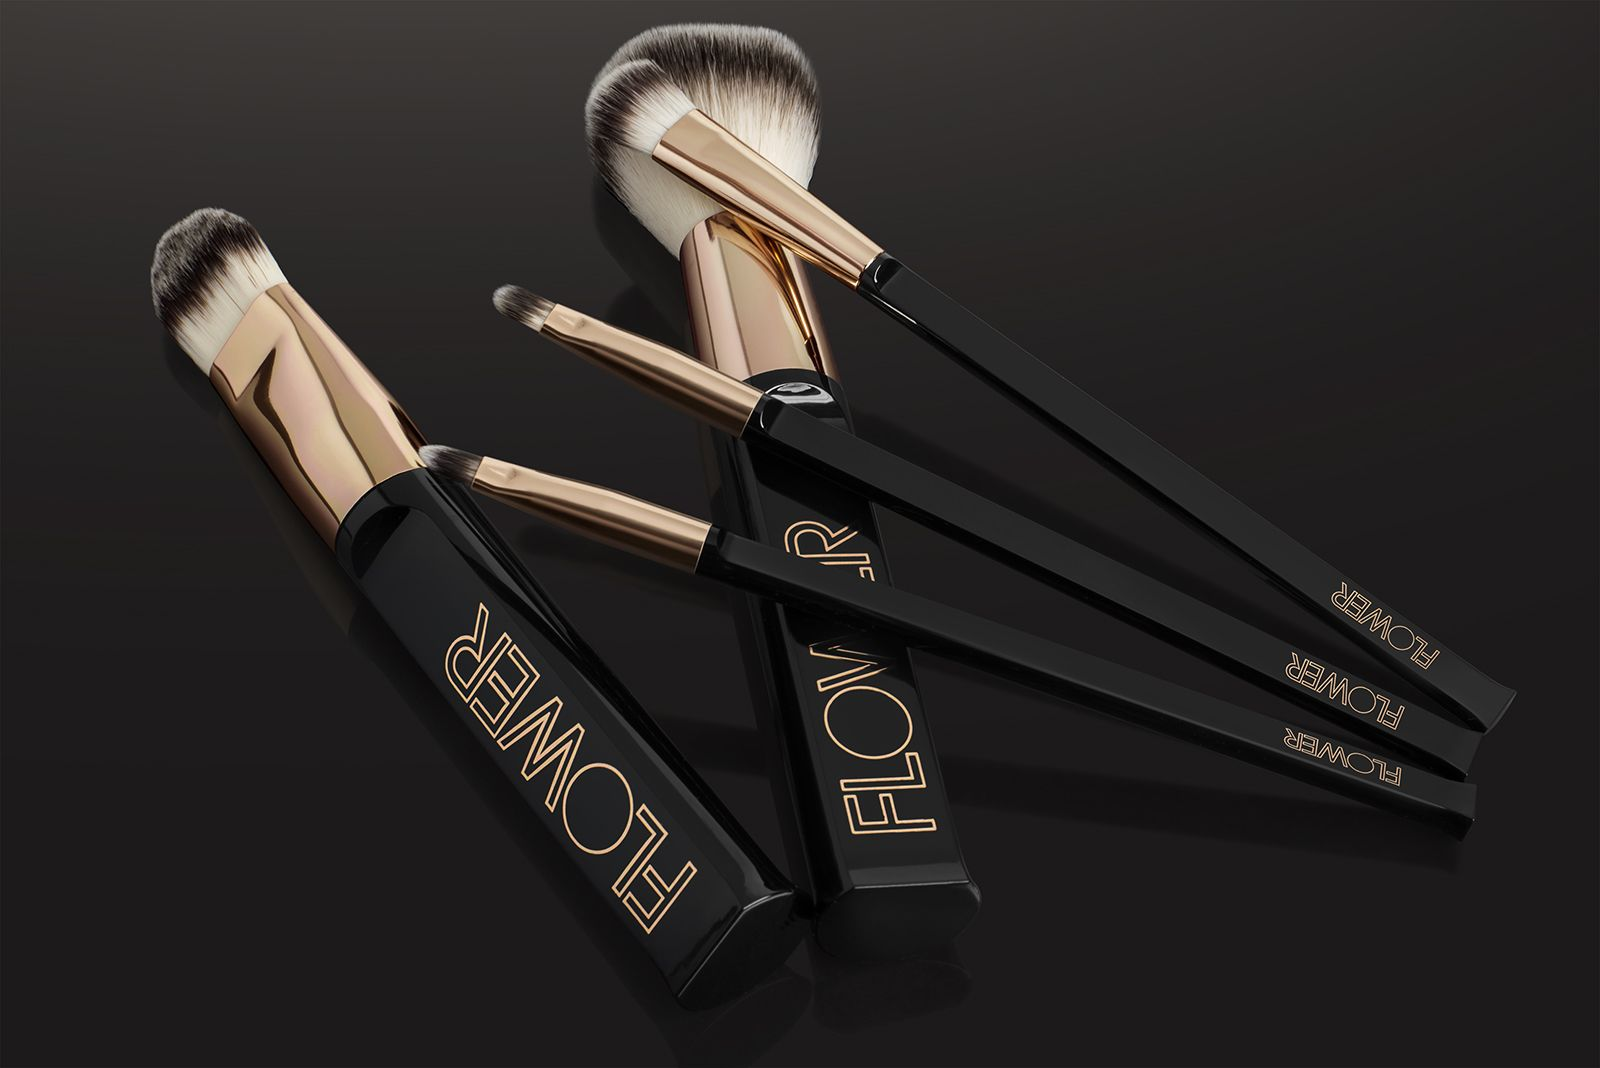 Flowerbeauty makeup brushes are made with the softest finest man flowerbeauty makeup brushes are made with the softest finest man made hair izmirmasajfo